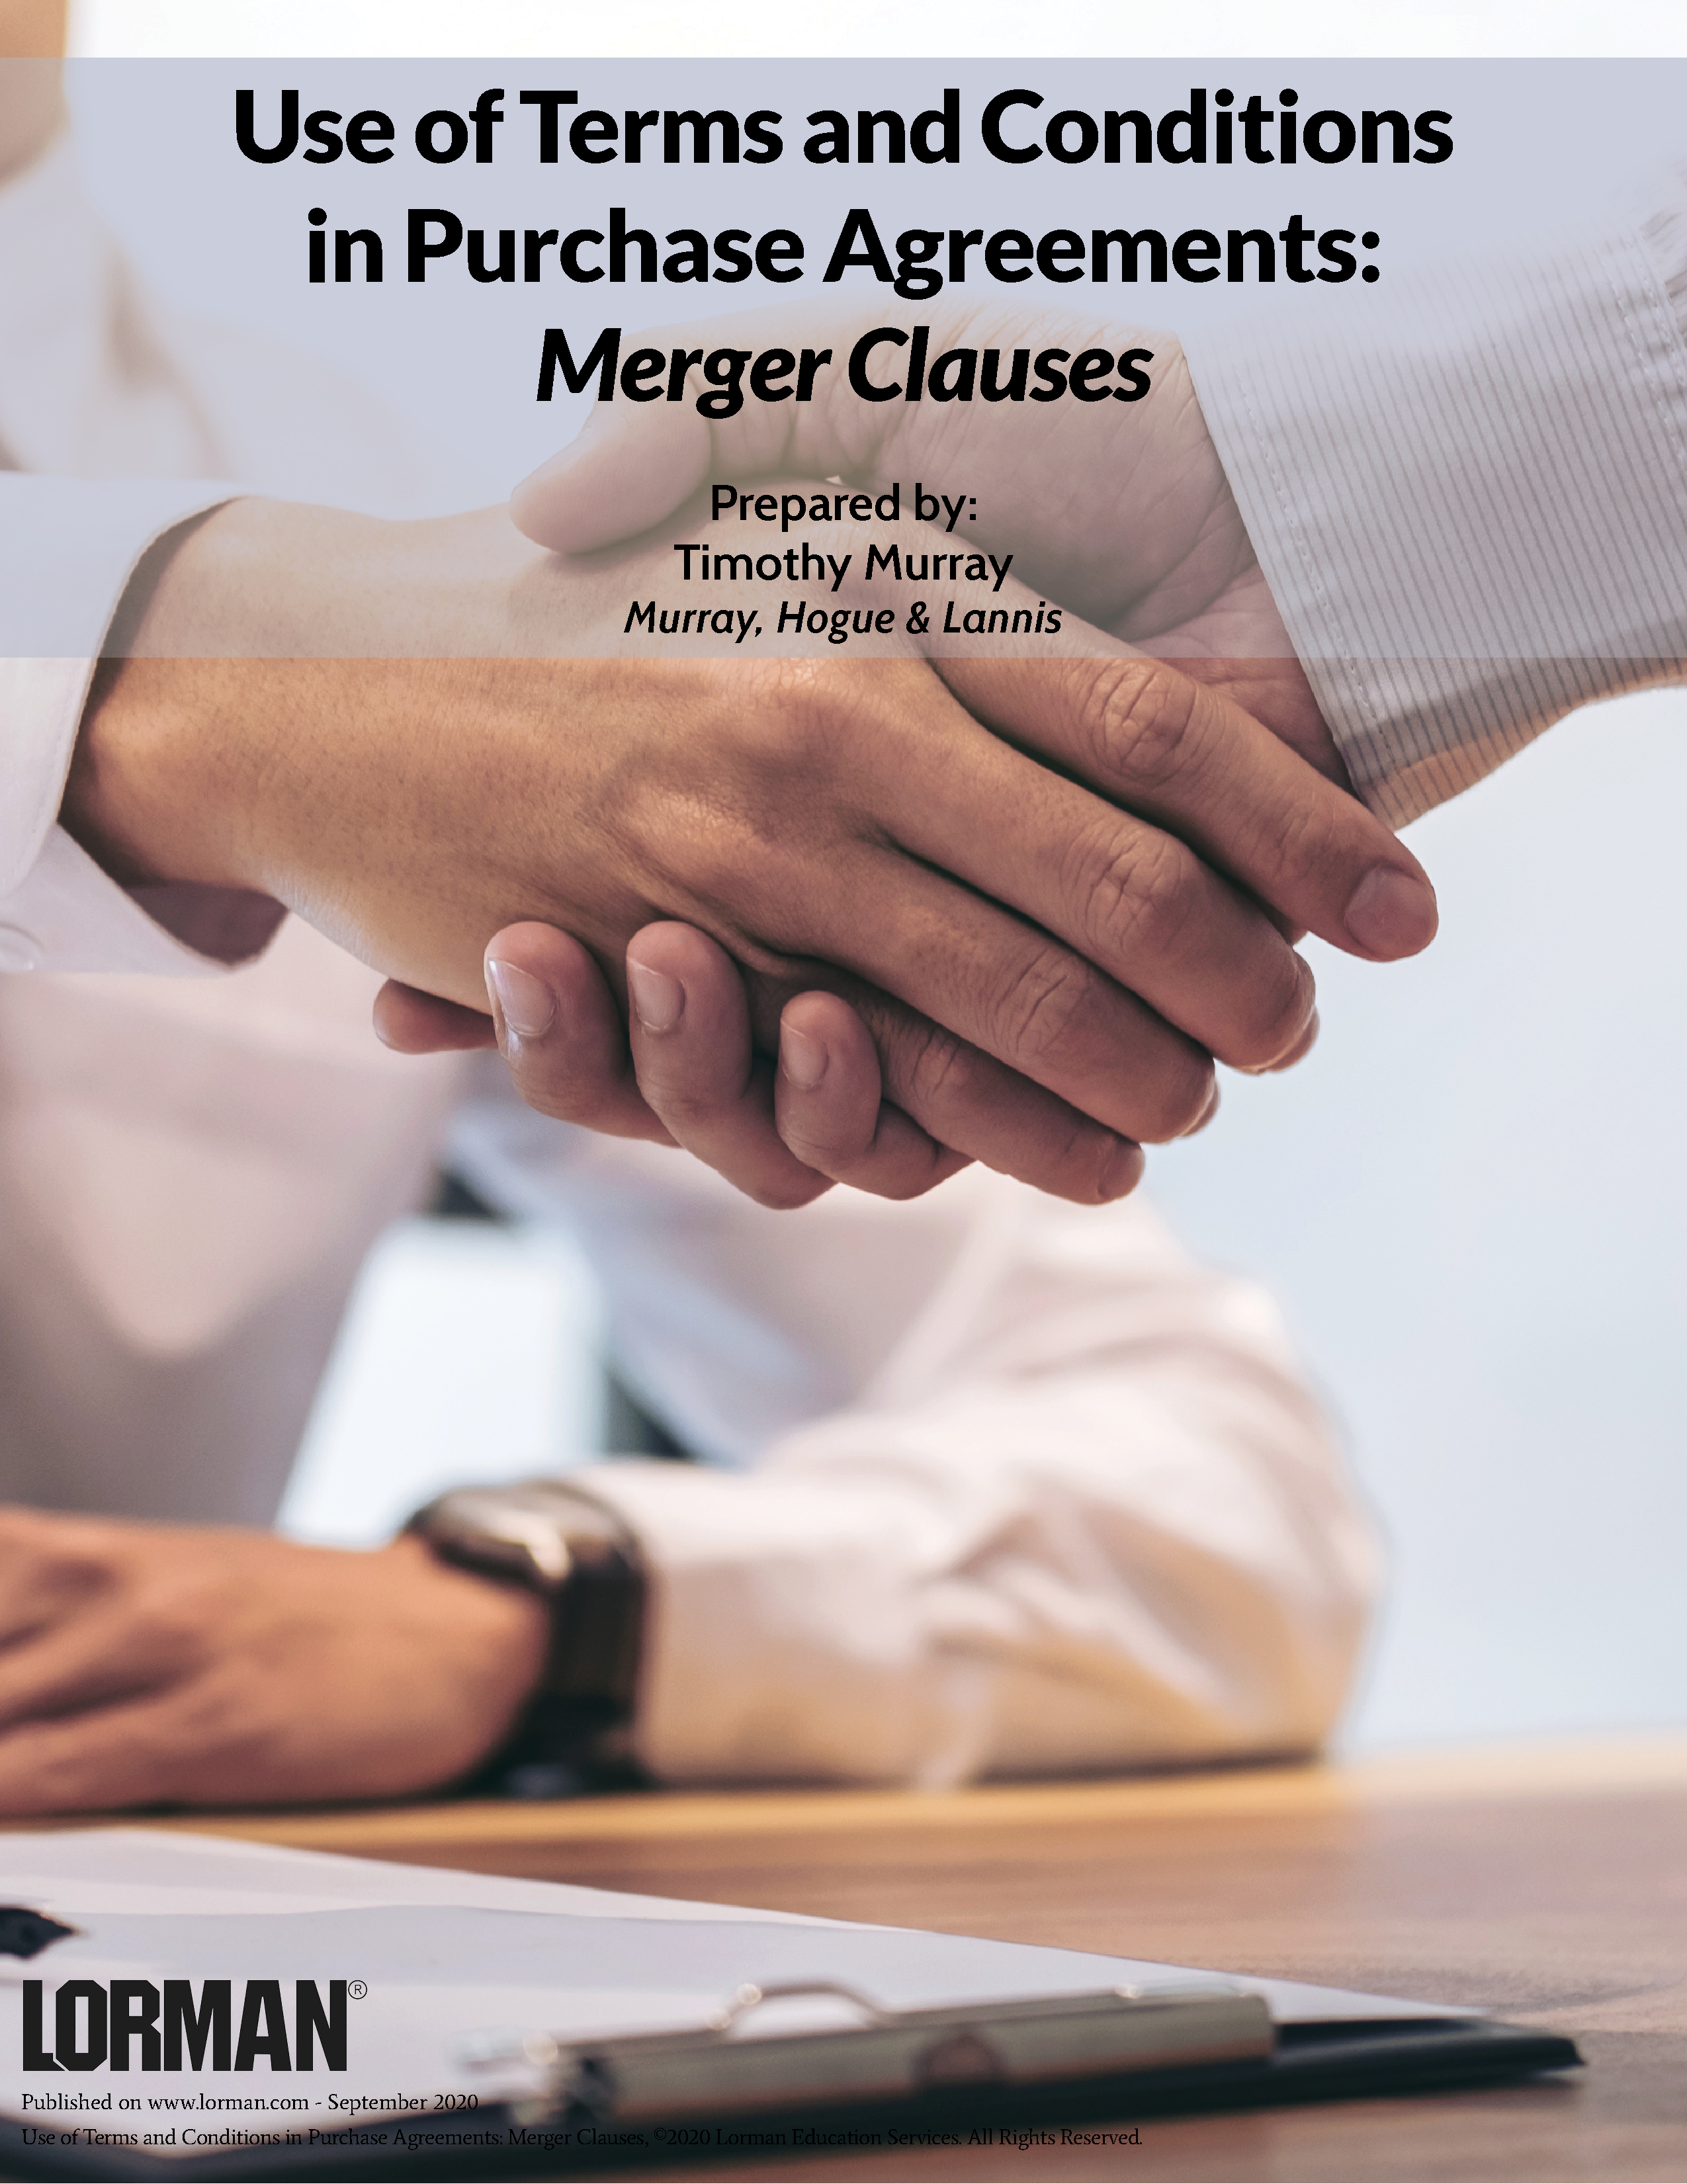 Use of Terms and Conditions in Purchase Agreements: Merger Clauses